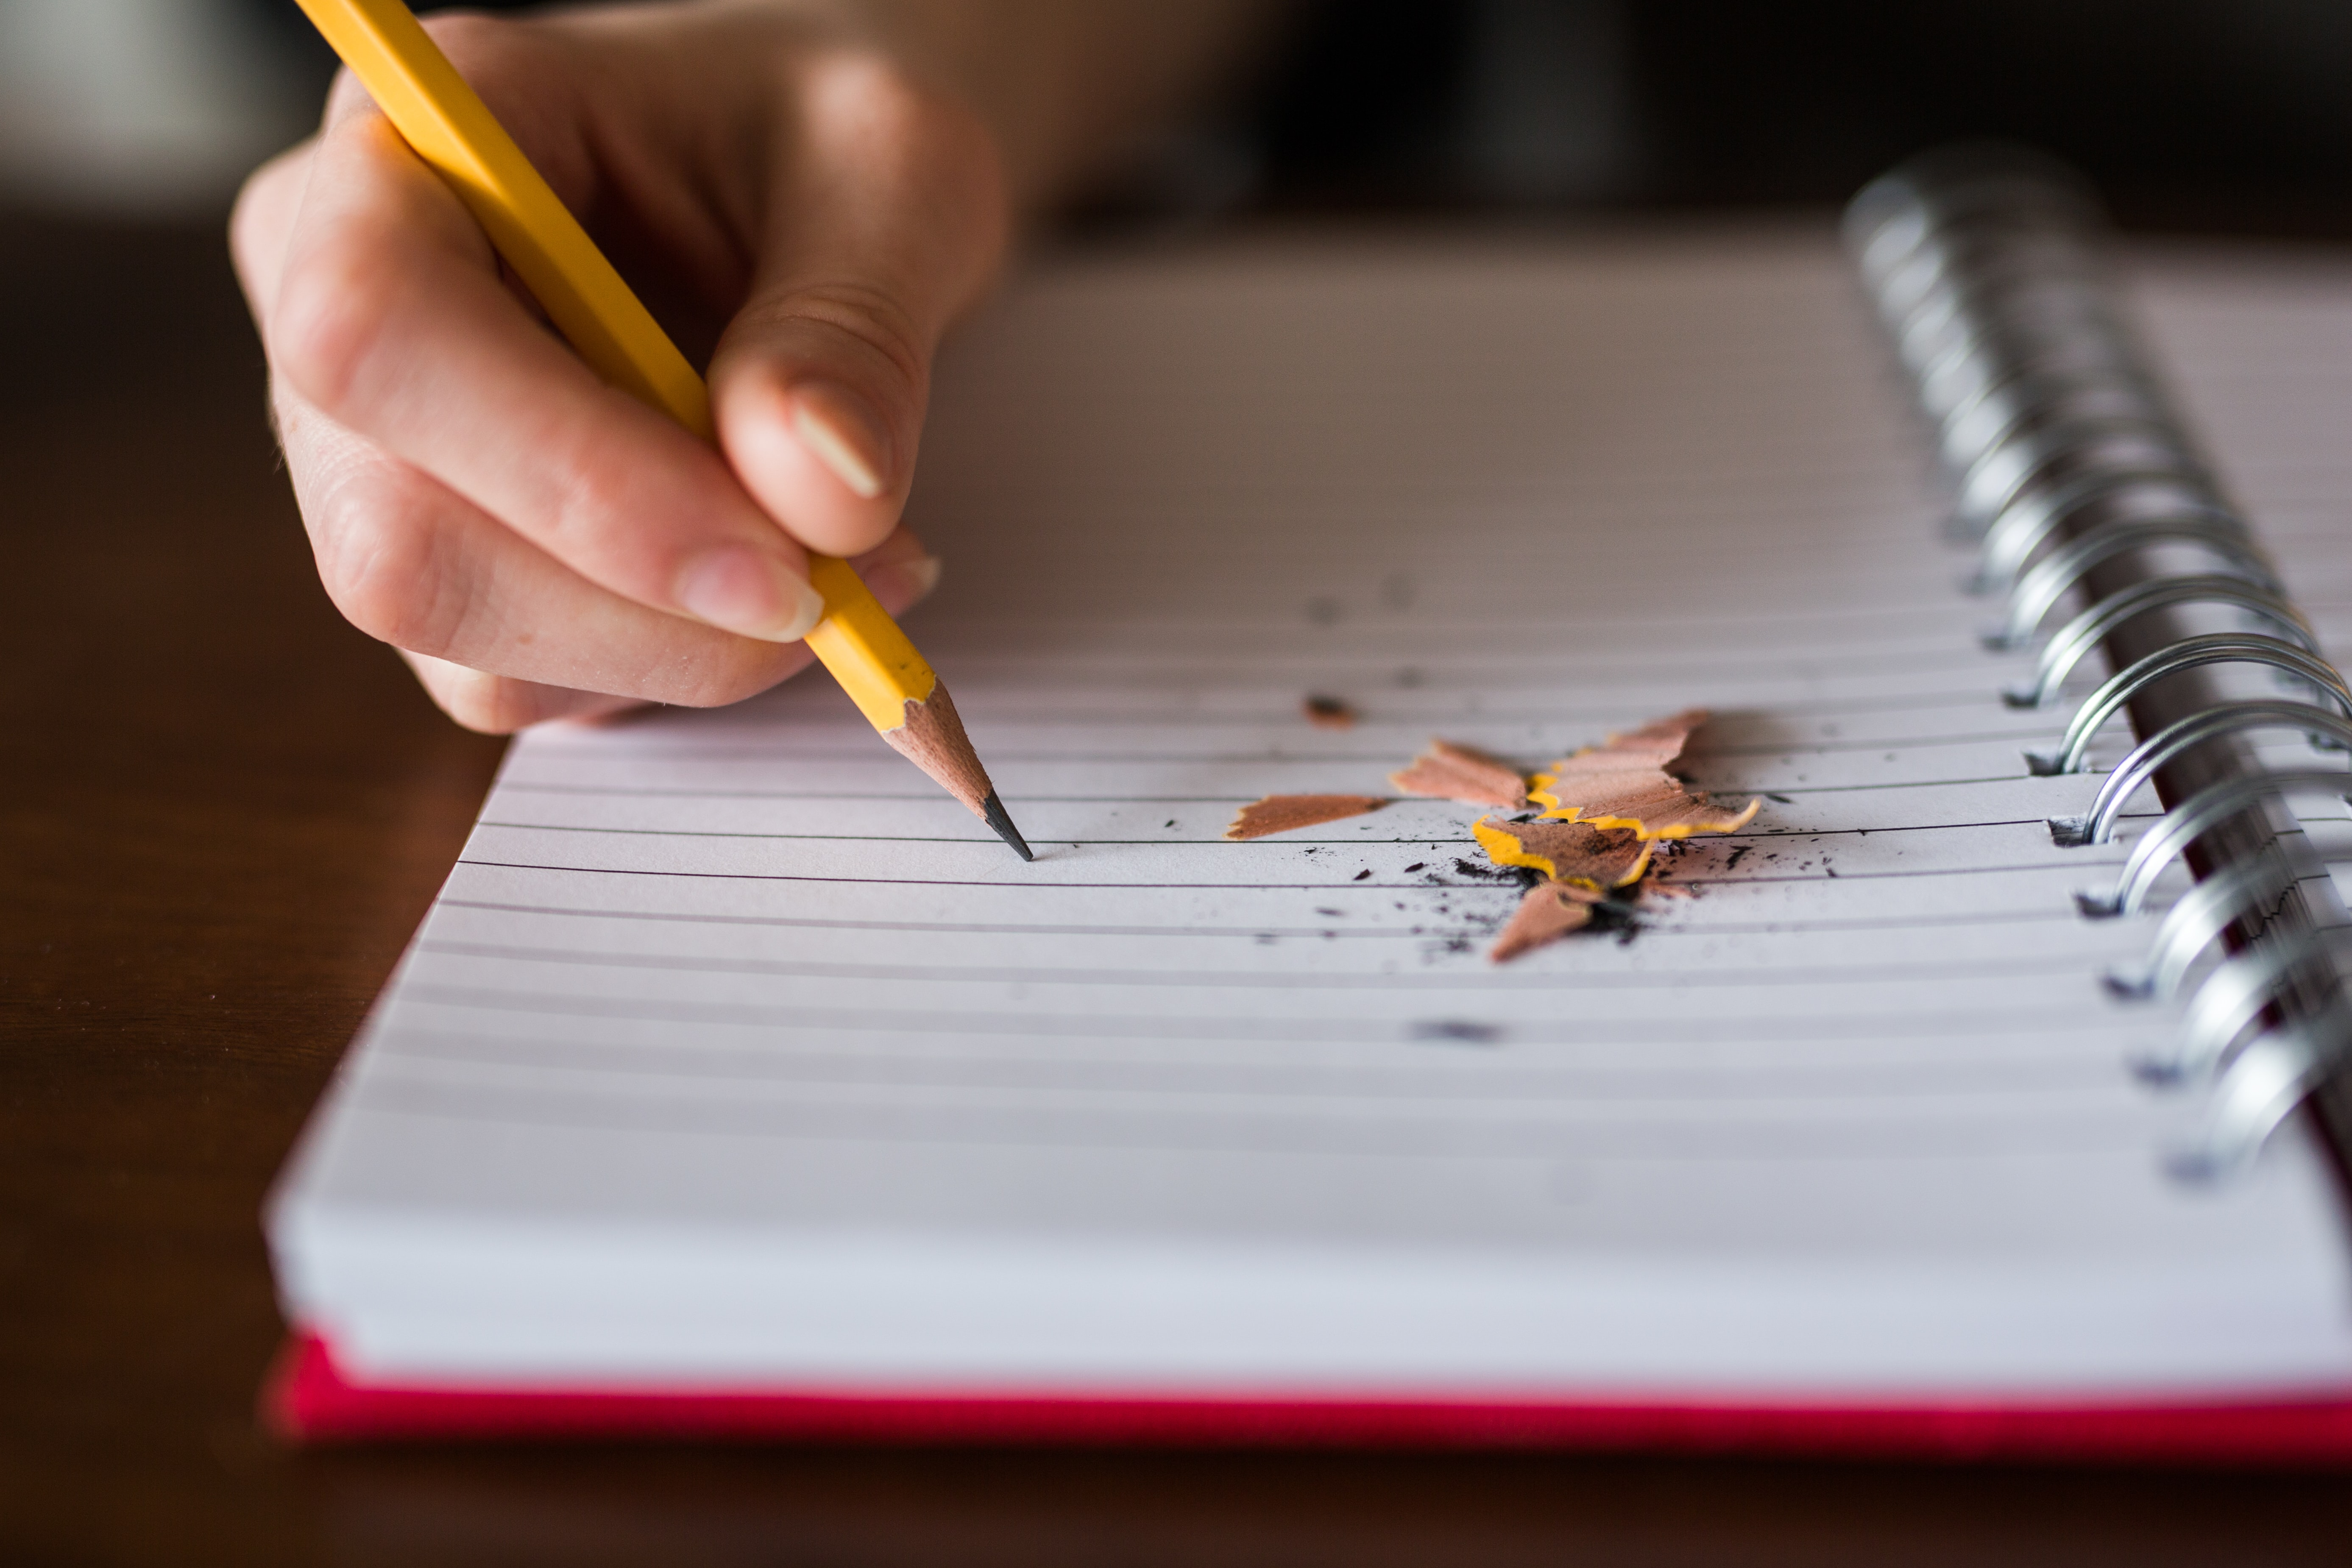 A person writing with a pencil in a notebook with pencil shavings on it